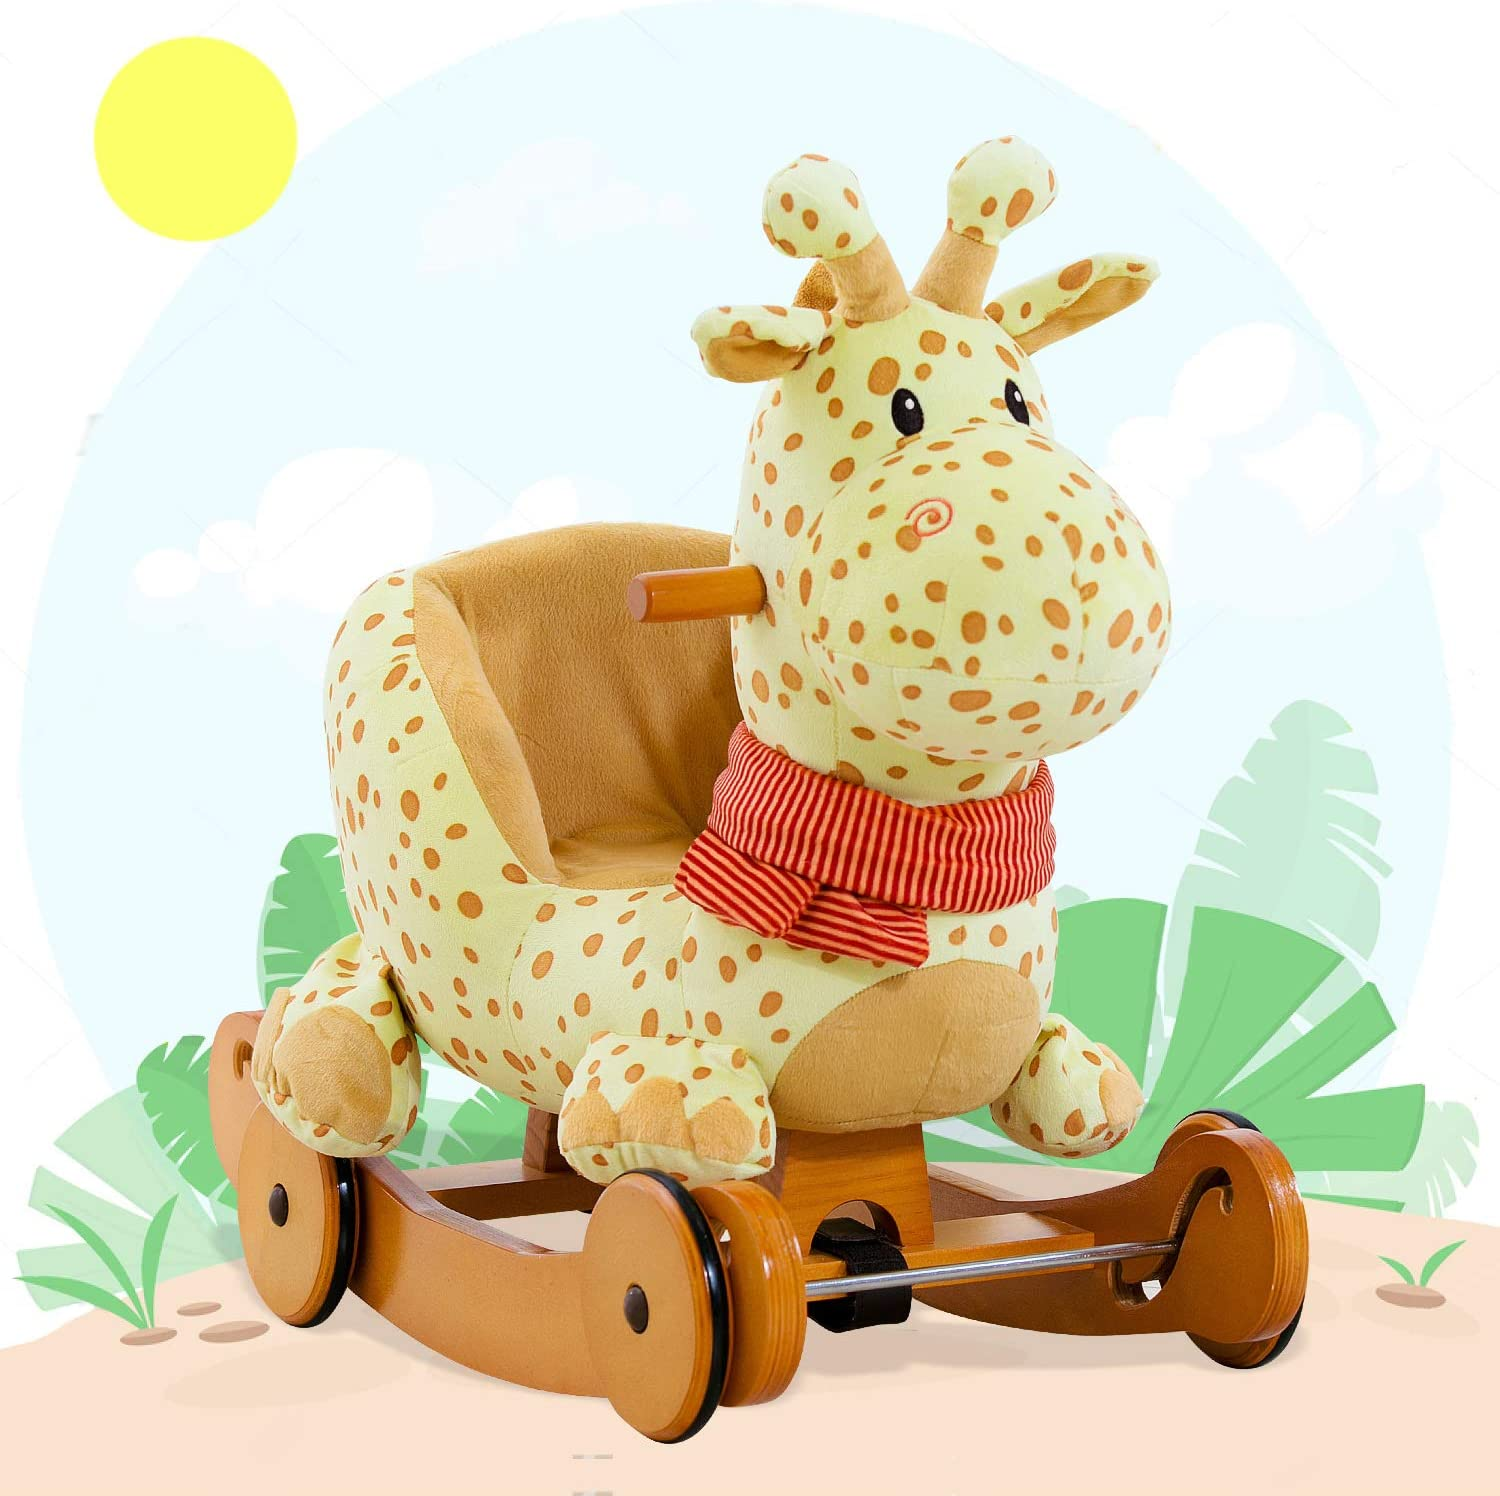 B00JVKN0UC Labebe Child Rocking Horse Plush, Fawn Rocking Horse Stuffed, 2 in 1 Yellow Giraffe Rocker with Wheel for Kid 6-36 Months, Rocking Toy/Wooden Rocking Horse/Rocker/Animal Ride/Deer Rocker for Boy&Girl 71GP5xx3iPL.SL1500_